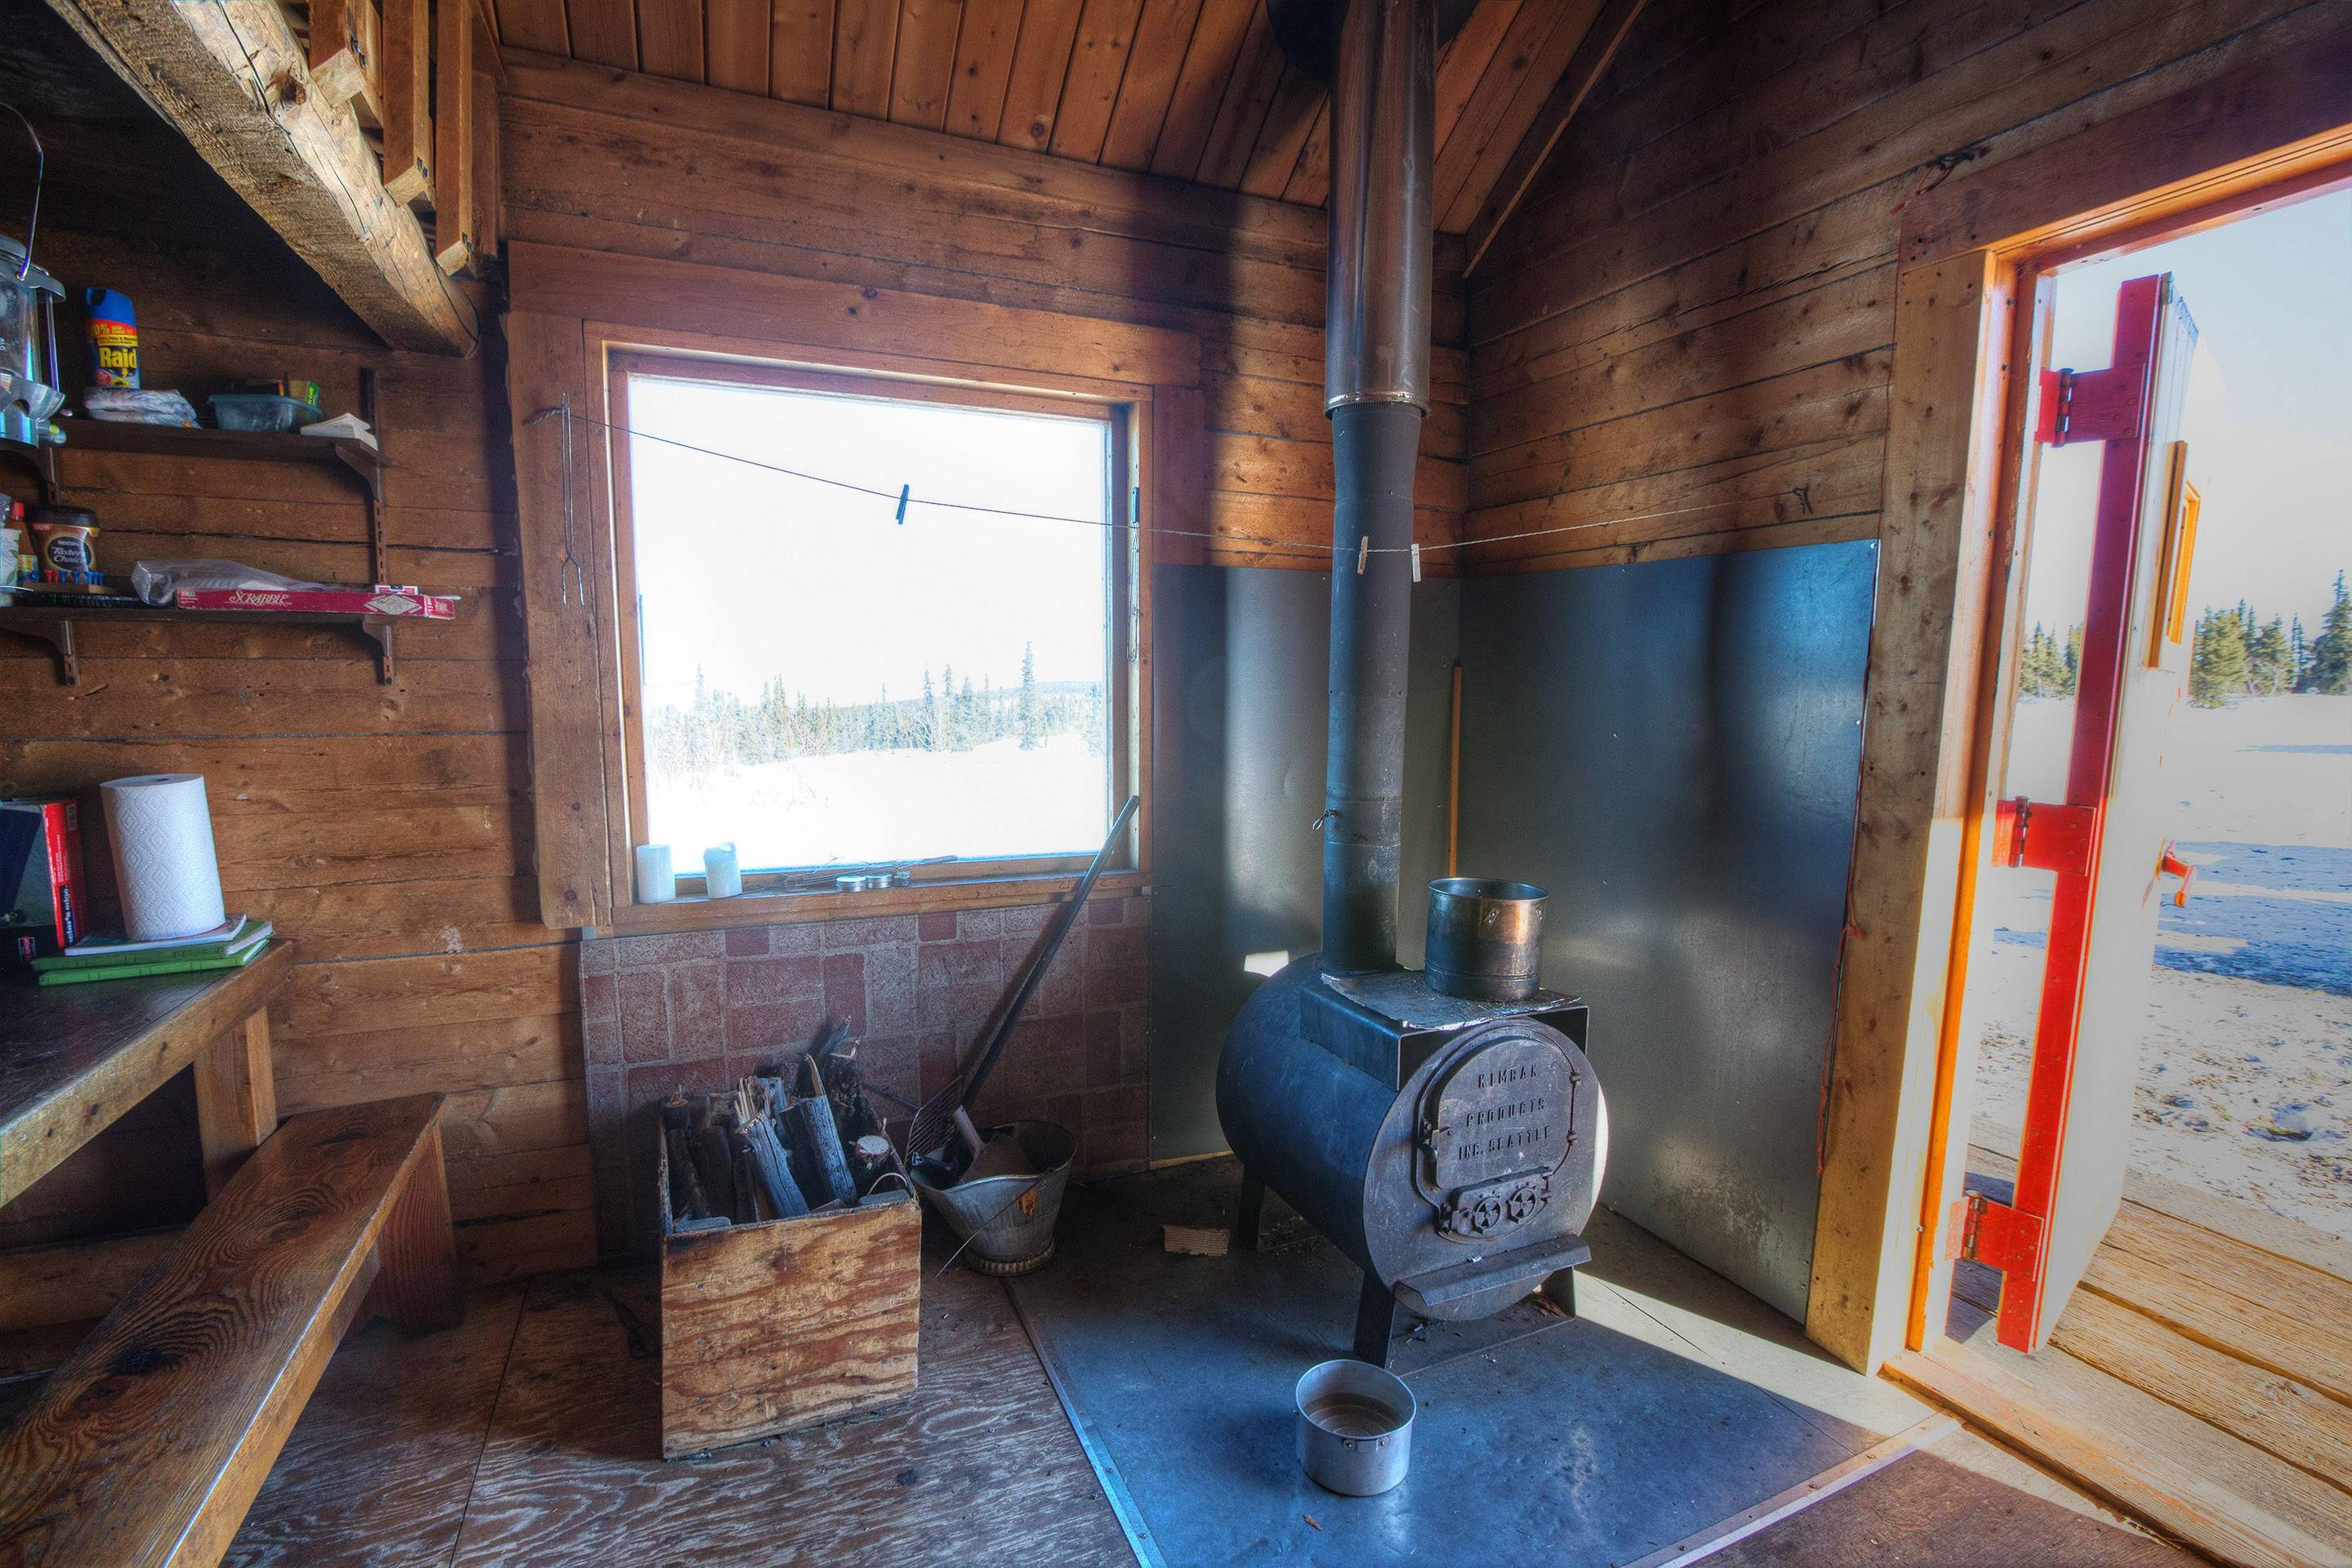 Inside view of log cabin with woodstove, window, and doorwayWoodstove and picture window at Lee's Cabin